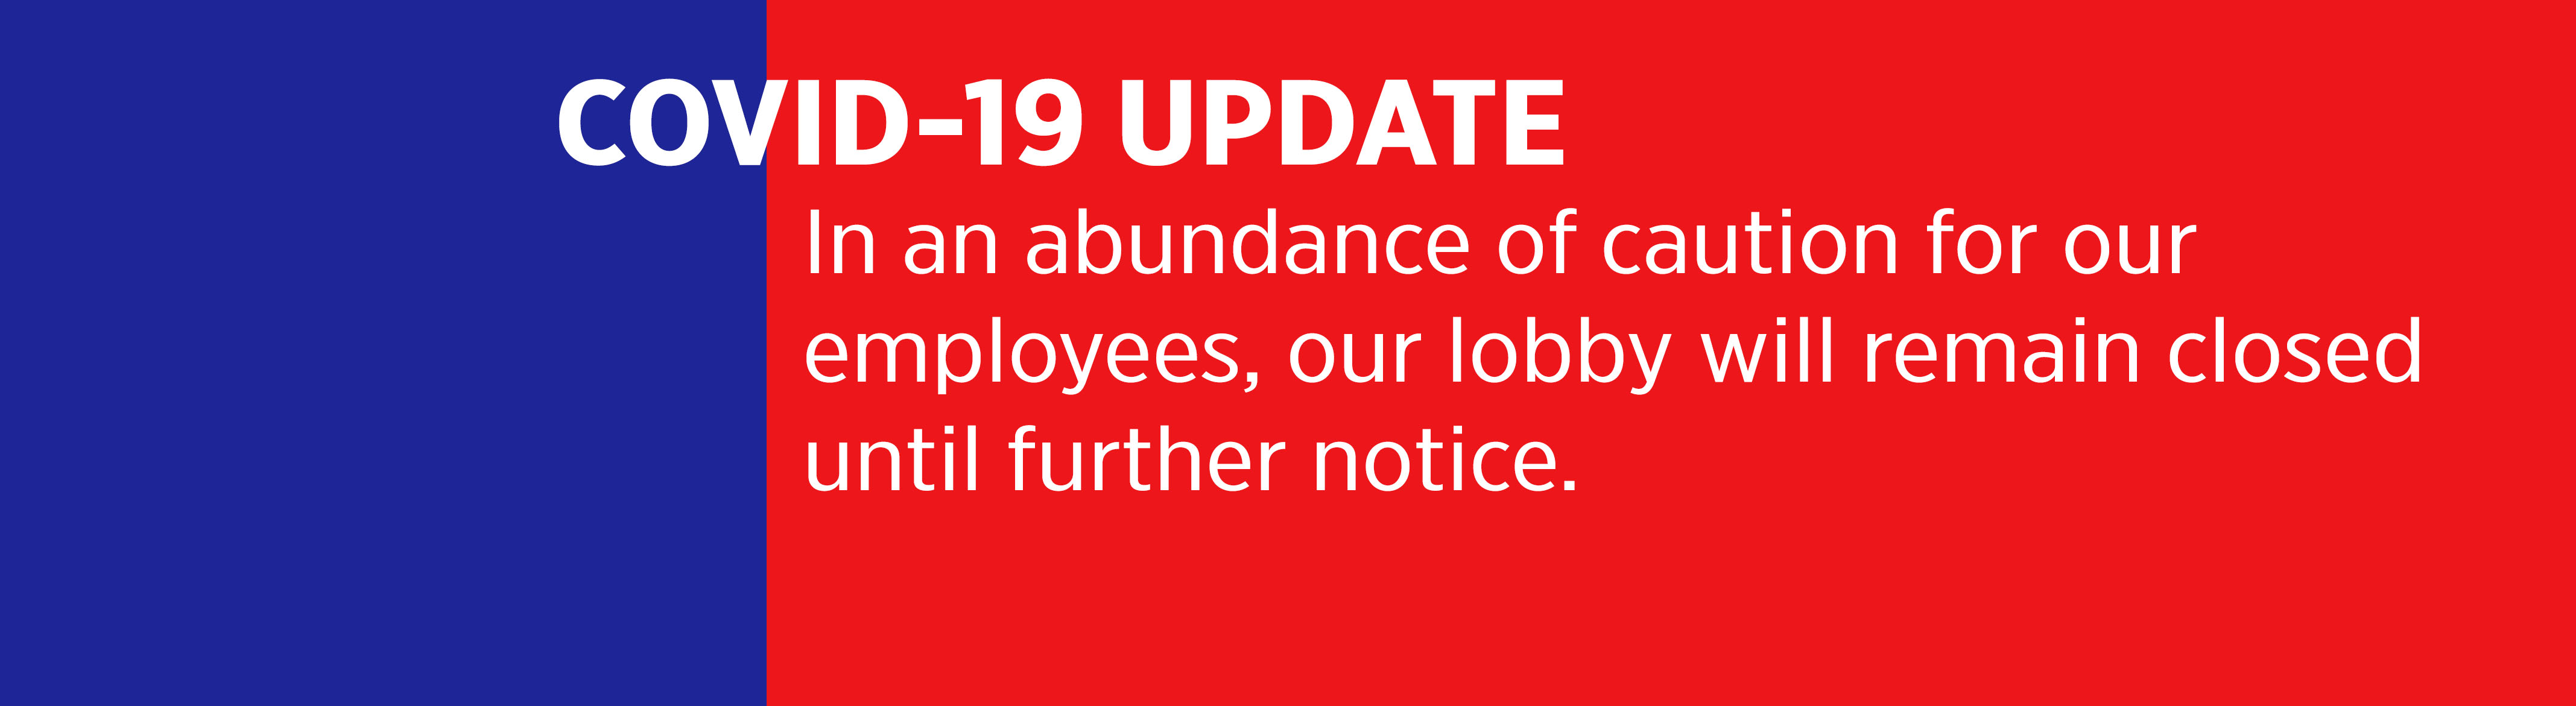 In an abundance of caution for our employees, our lobby will remain closed until further notice.